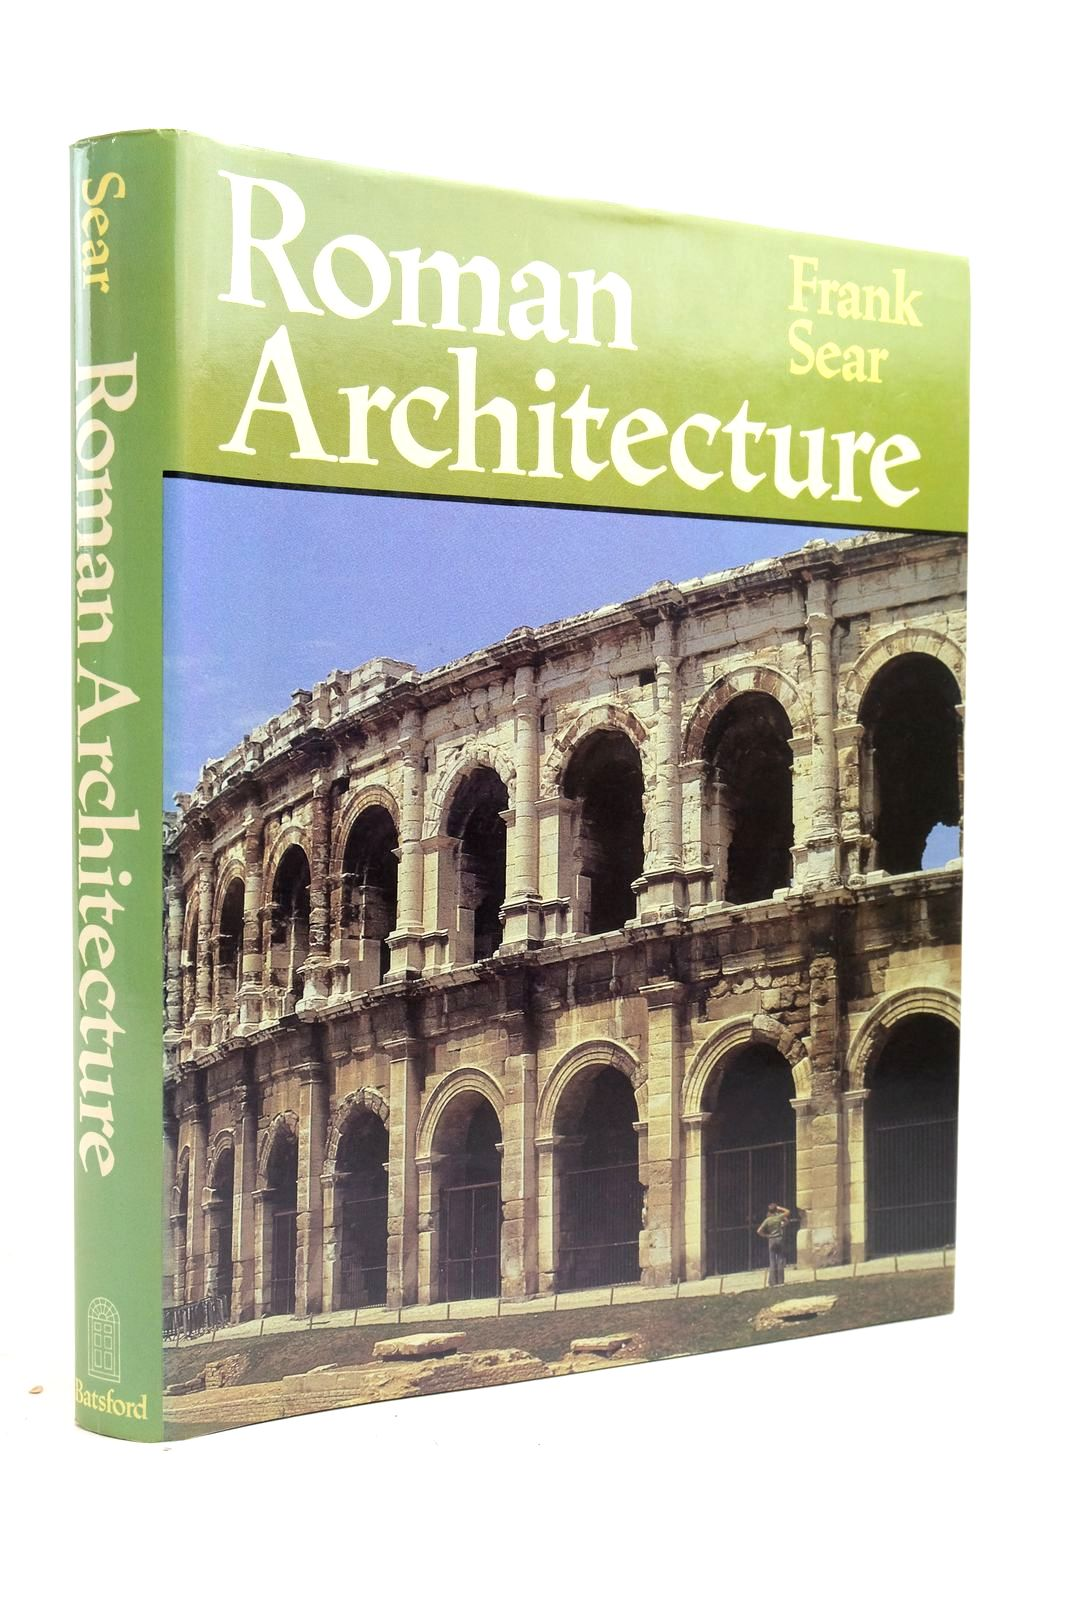 Photo of ROMAN ARCHITECTURE- Stock Number: 2134771